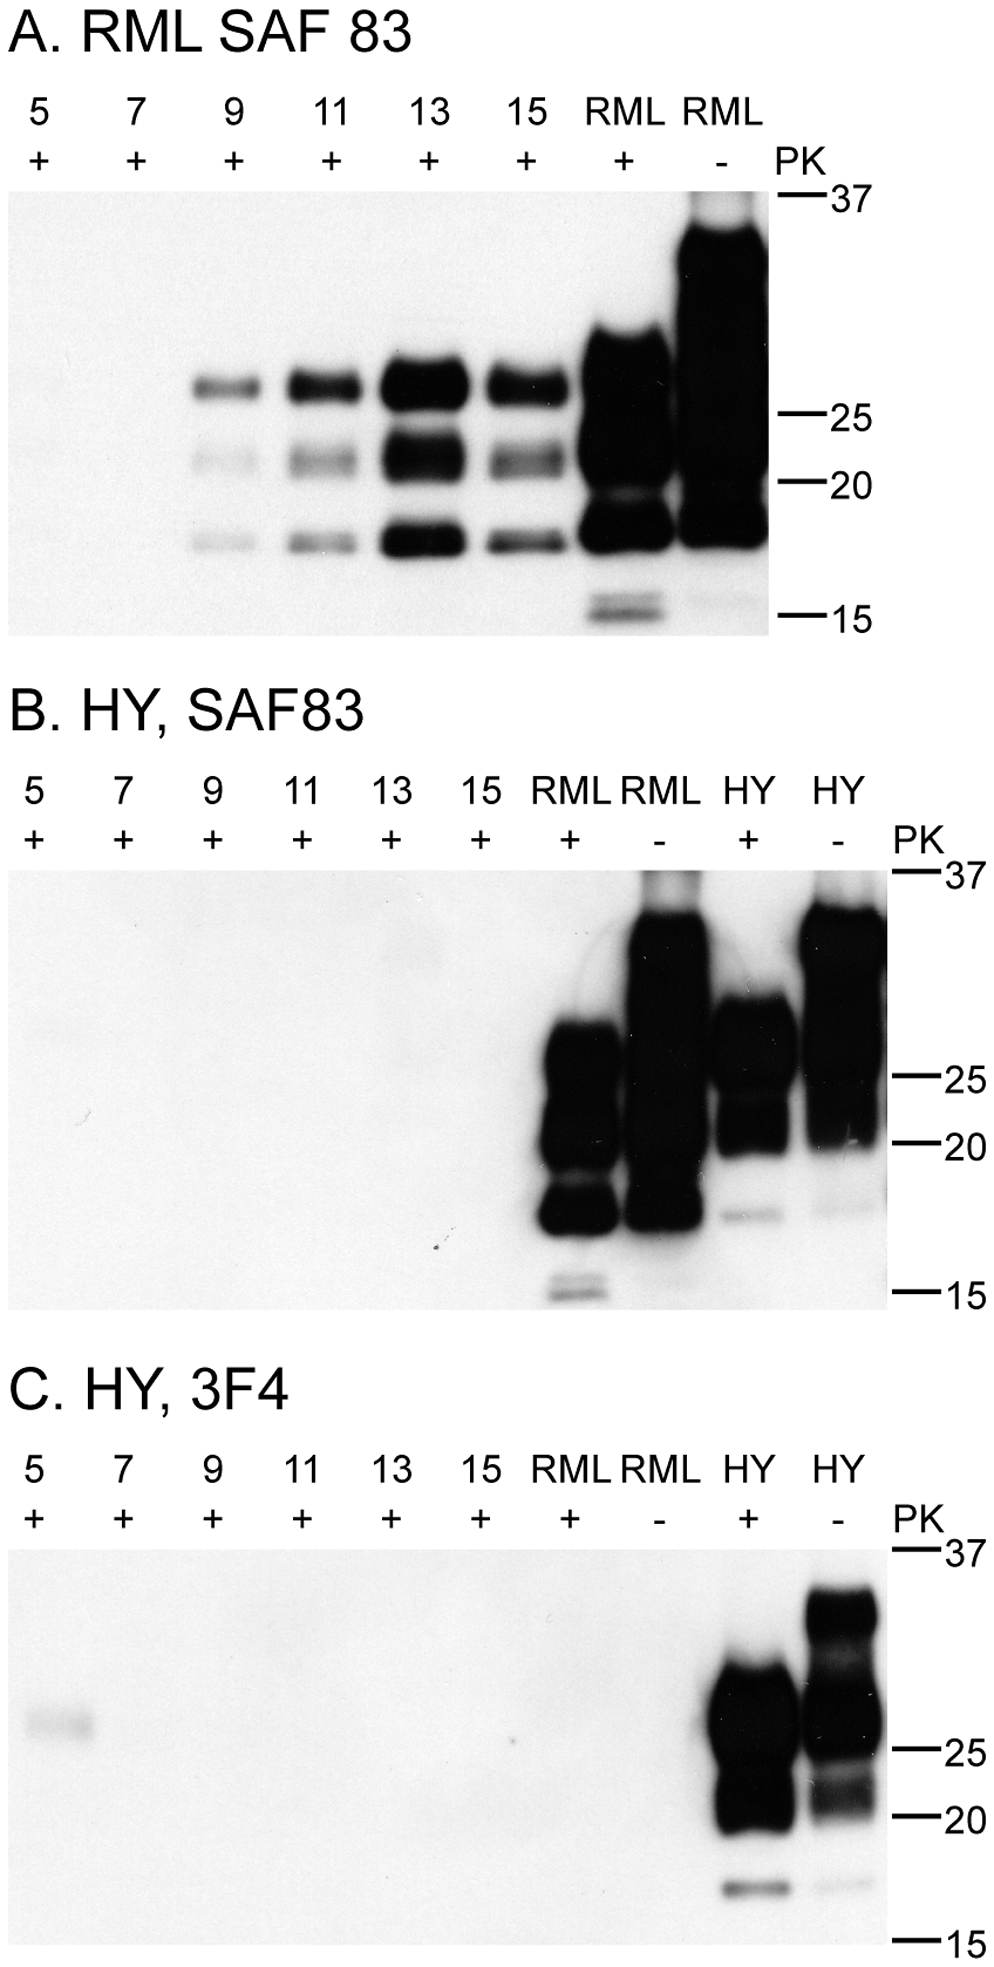 C2C12 myotubes replicate mouse RML prions, but not hamster HY prions.